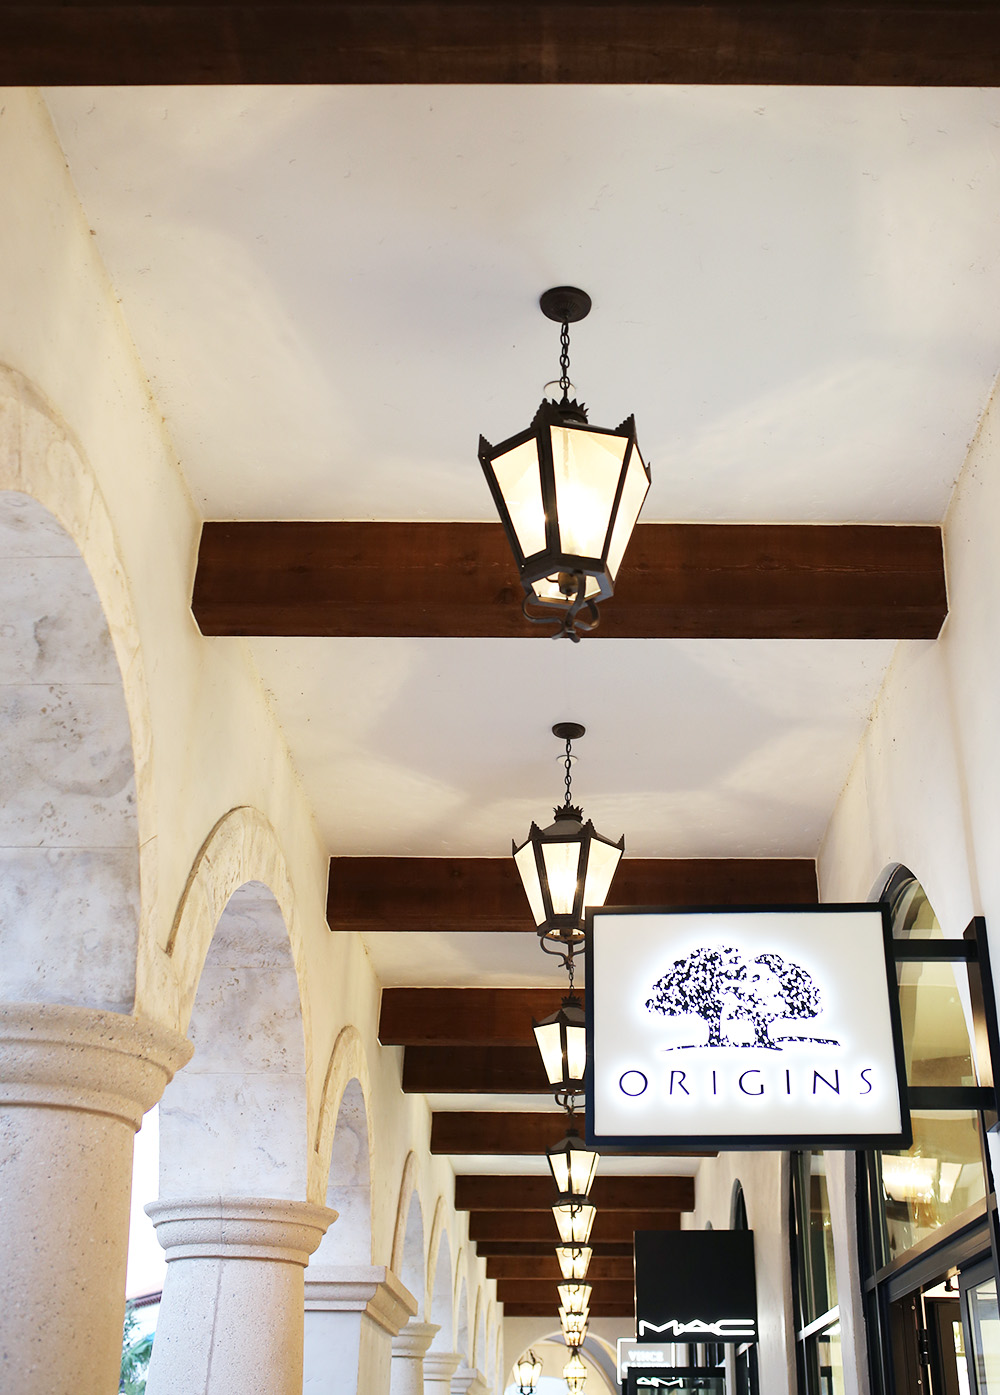 Origins Disney Springs